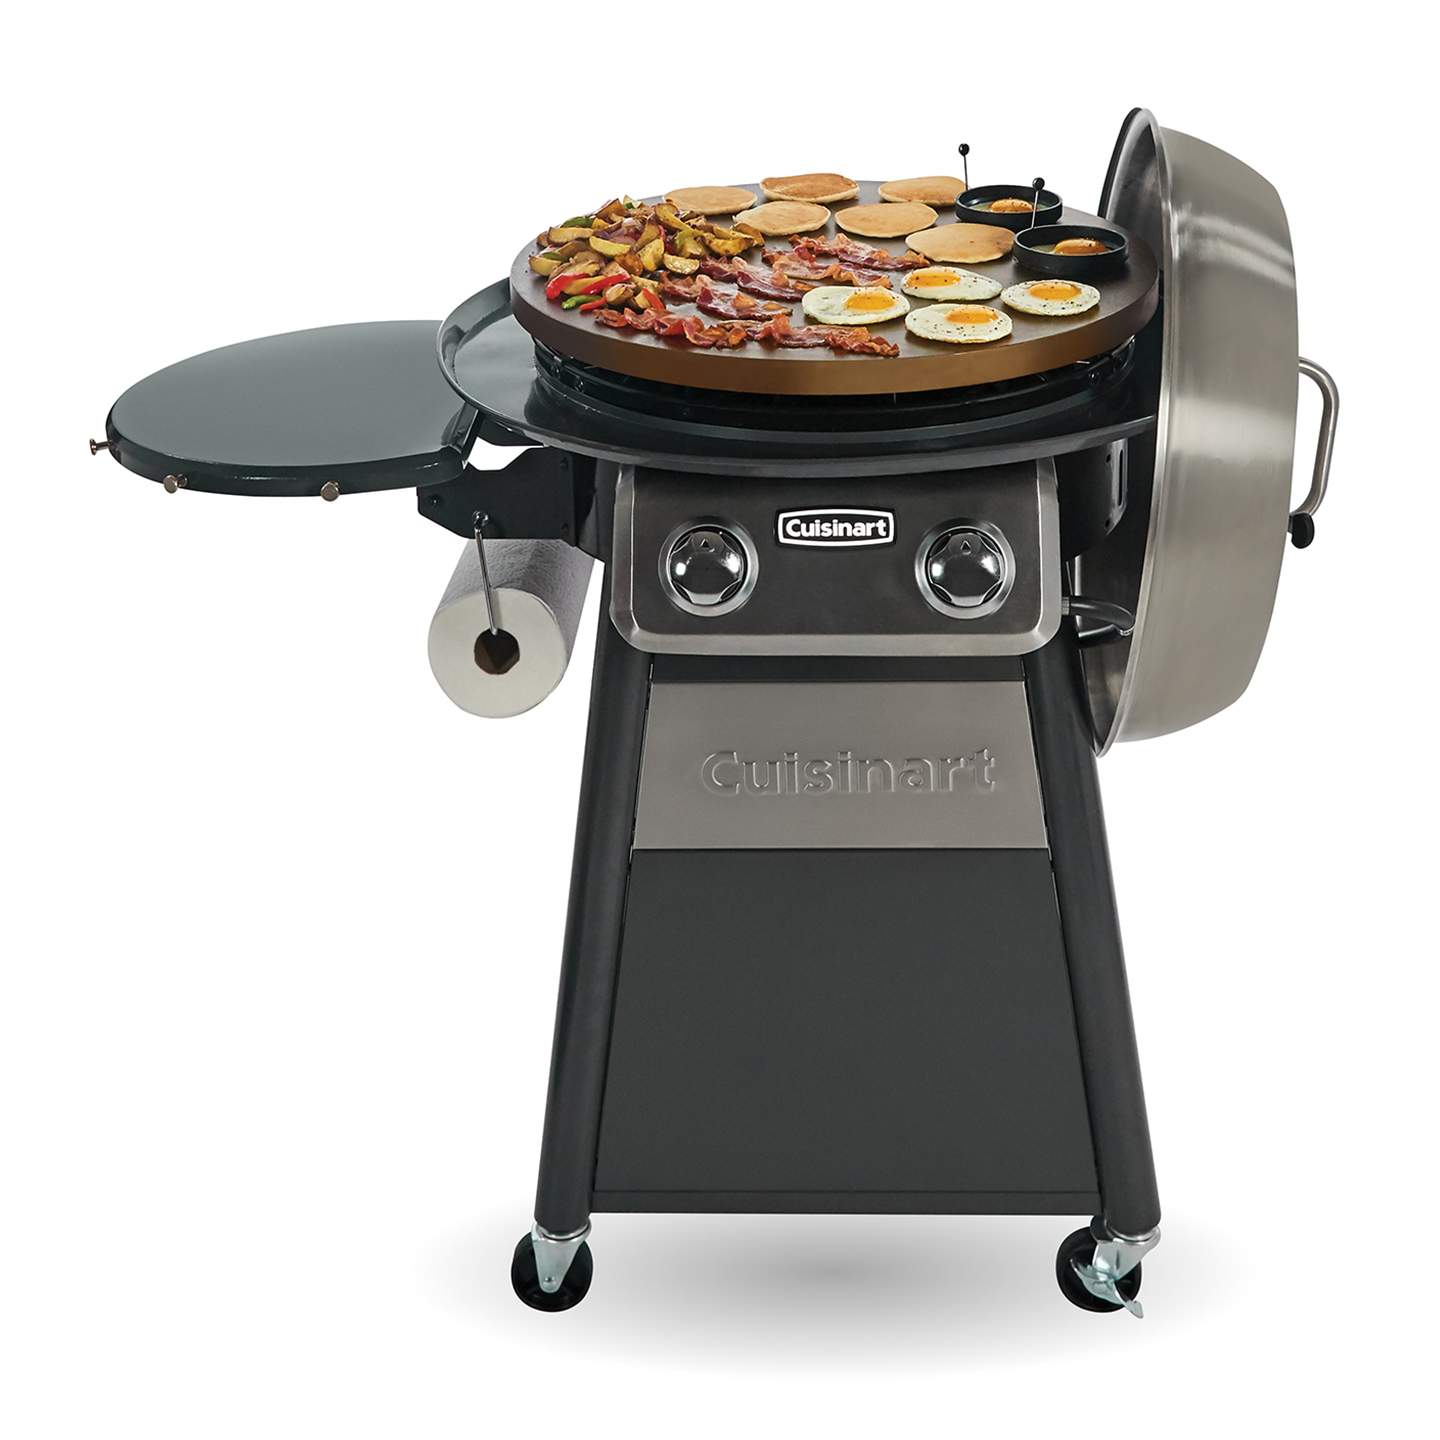 The Fulham Group, a Cuisinart® Brand Licensee, Introduces Range of New Outdoor Grilling Products, Including a Global Innovation Award Finalist Griddle